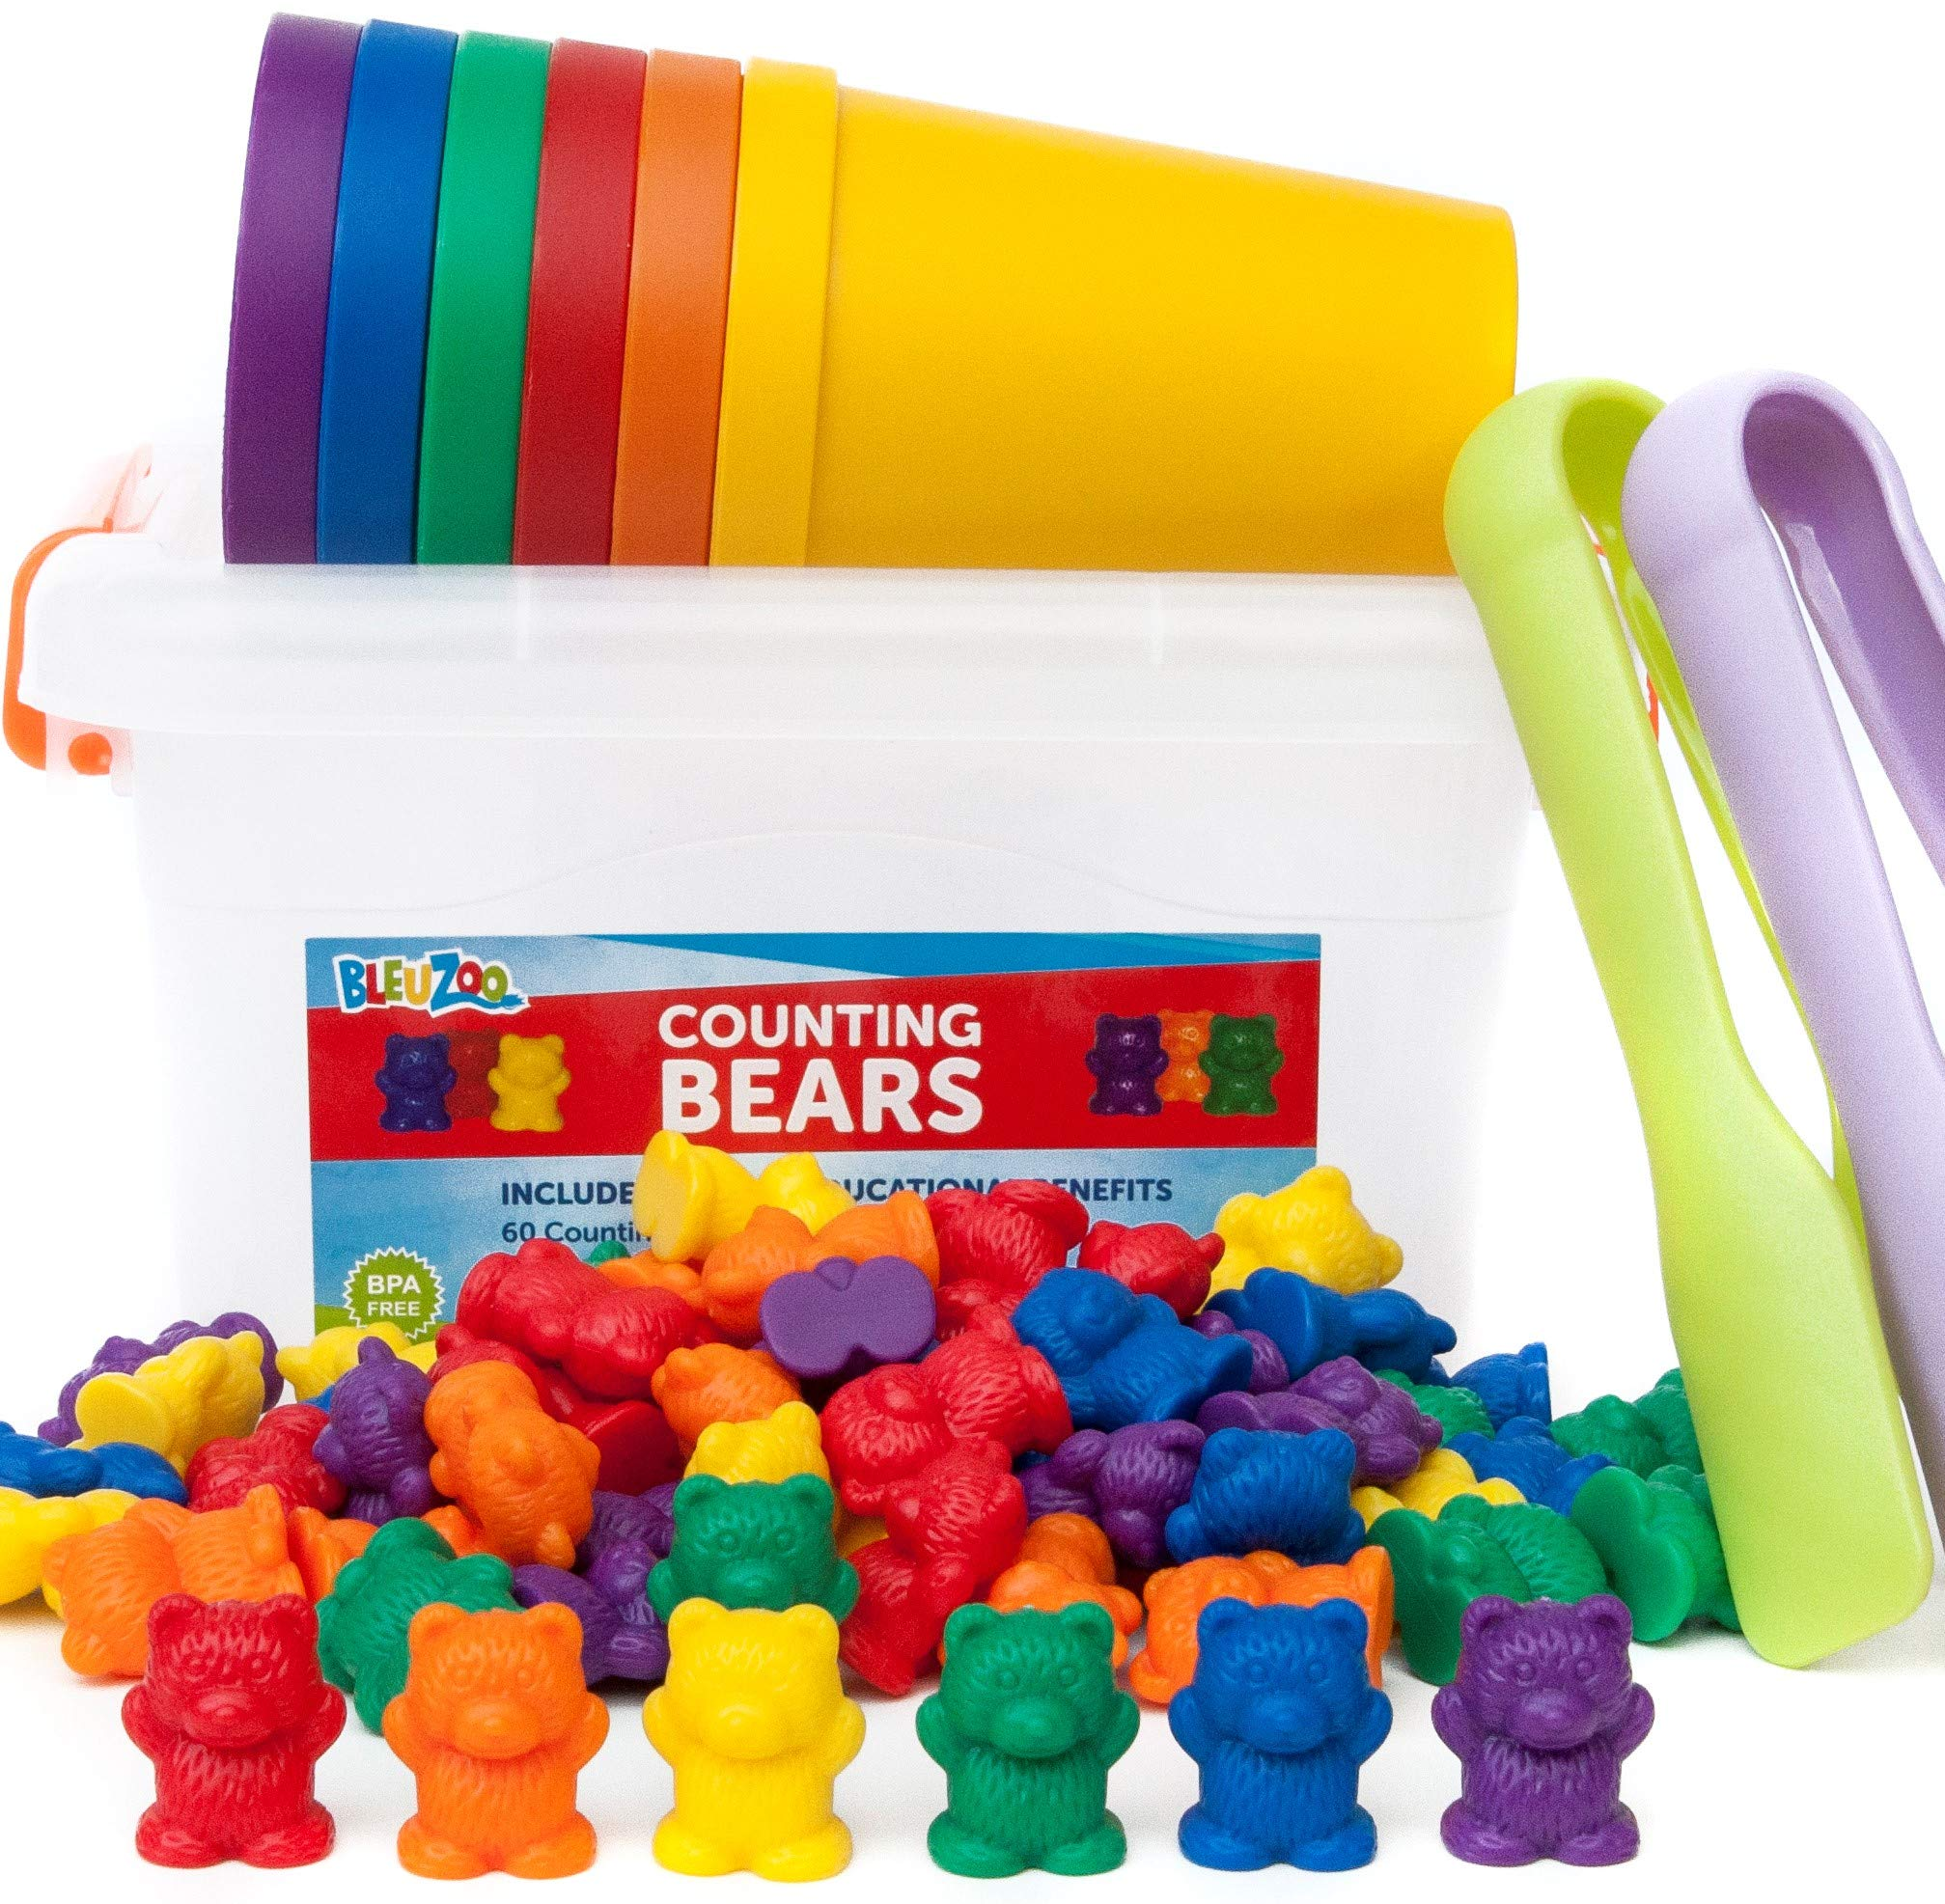 BleuZoo Rainbow Counting Bears + Activity eBook | Montessori Educational Toddler STEM Fine Motor Skills Toys Occupational Therapy Math Sorting Toys | 60 Bears, 6 Matching Cups, 2 Tweezers, Container by BleuZoo